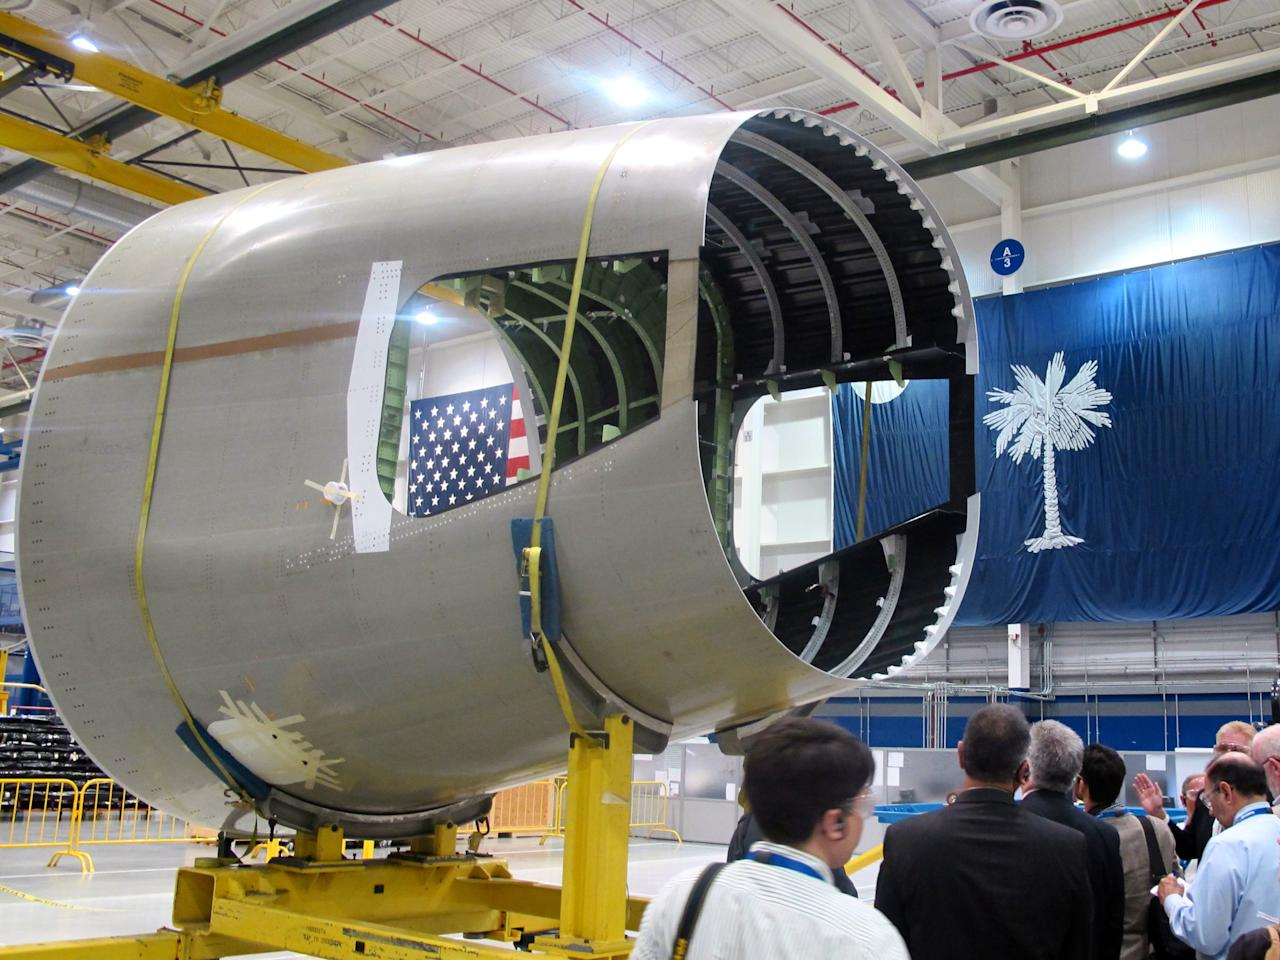 Reporters tour the aft body assembly plant at Boeing's $750 million plant in North Charleston, S.C., on Friday, April 27, 2012. The company was rolling out the first of its new 787s manufactured at its South Carolina plant which opened in 2011. (AP Photo/Bruce Smith).